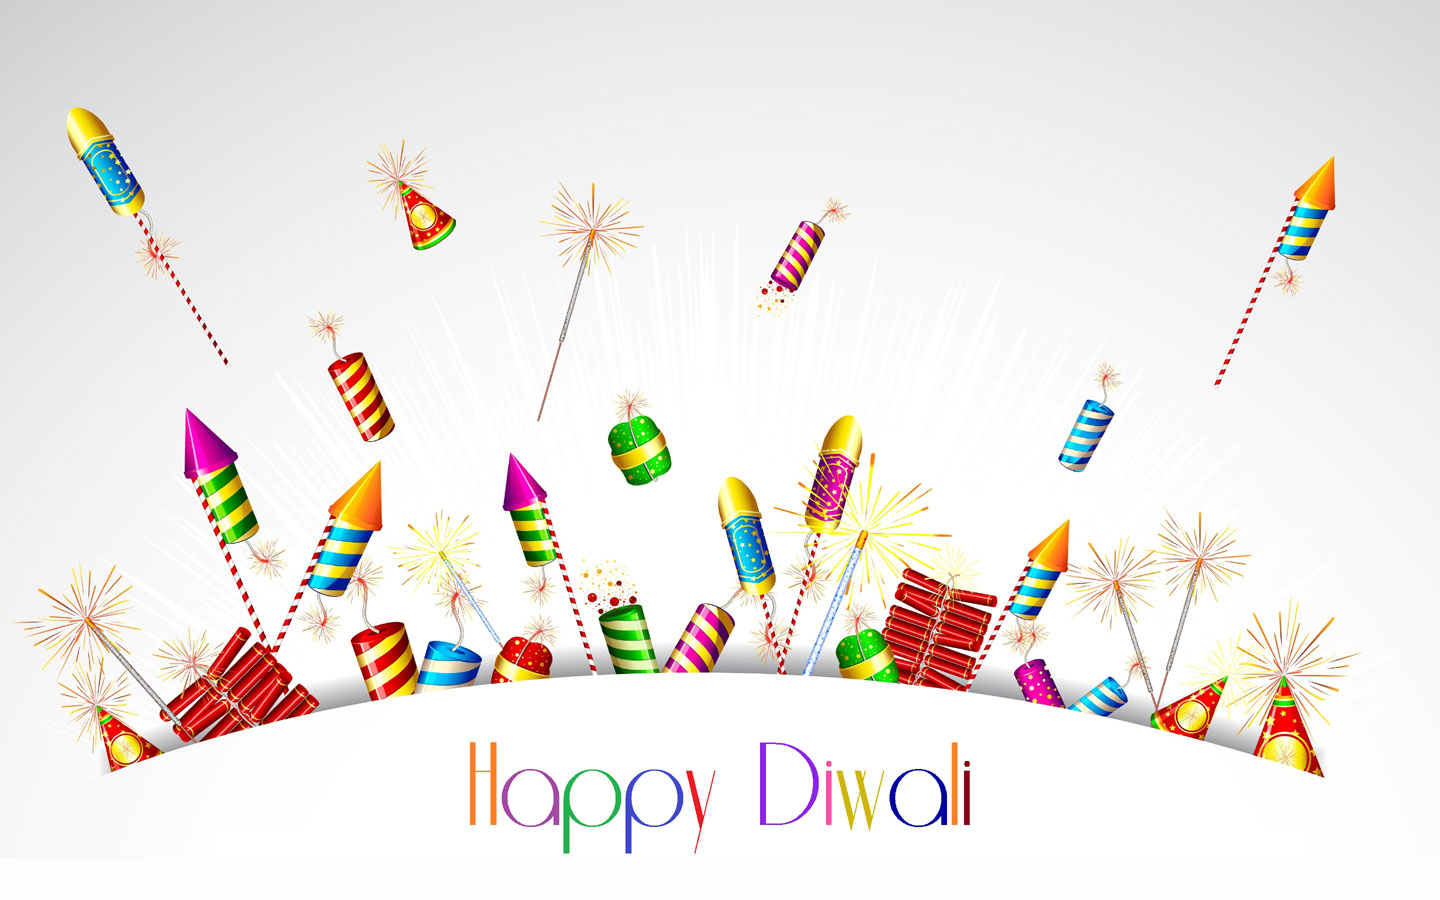 Diwali Wallpaper hd English